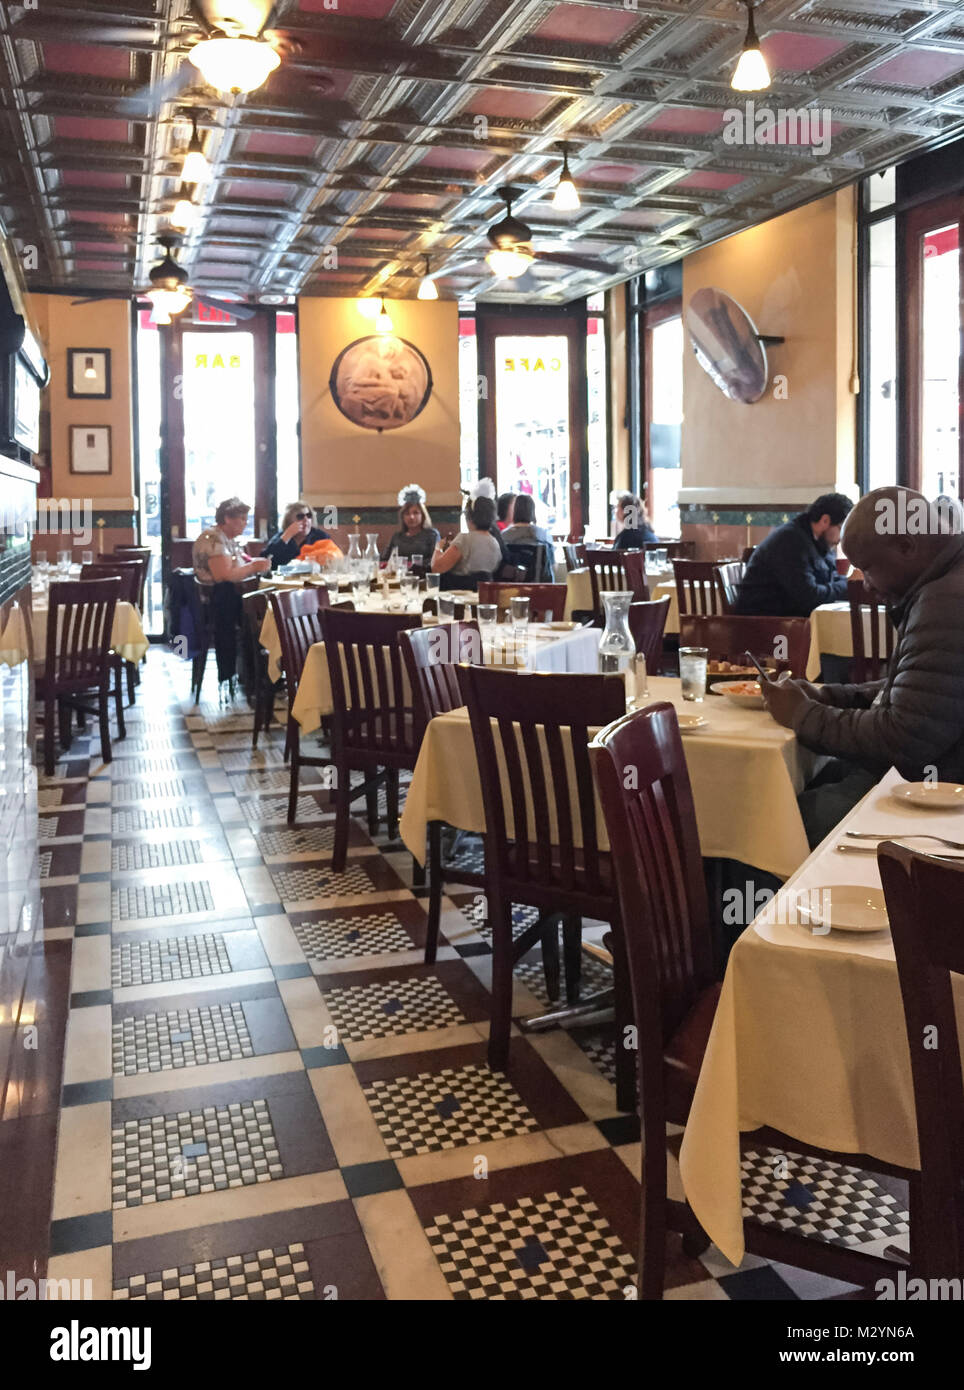 Interior of Grotto Azzurra in the Little Italy neighborhood, Manhattan, New York City. People dining out in traditional - Stock Image